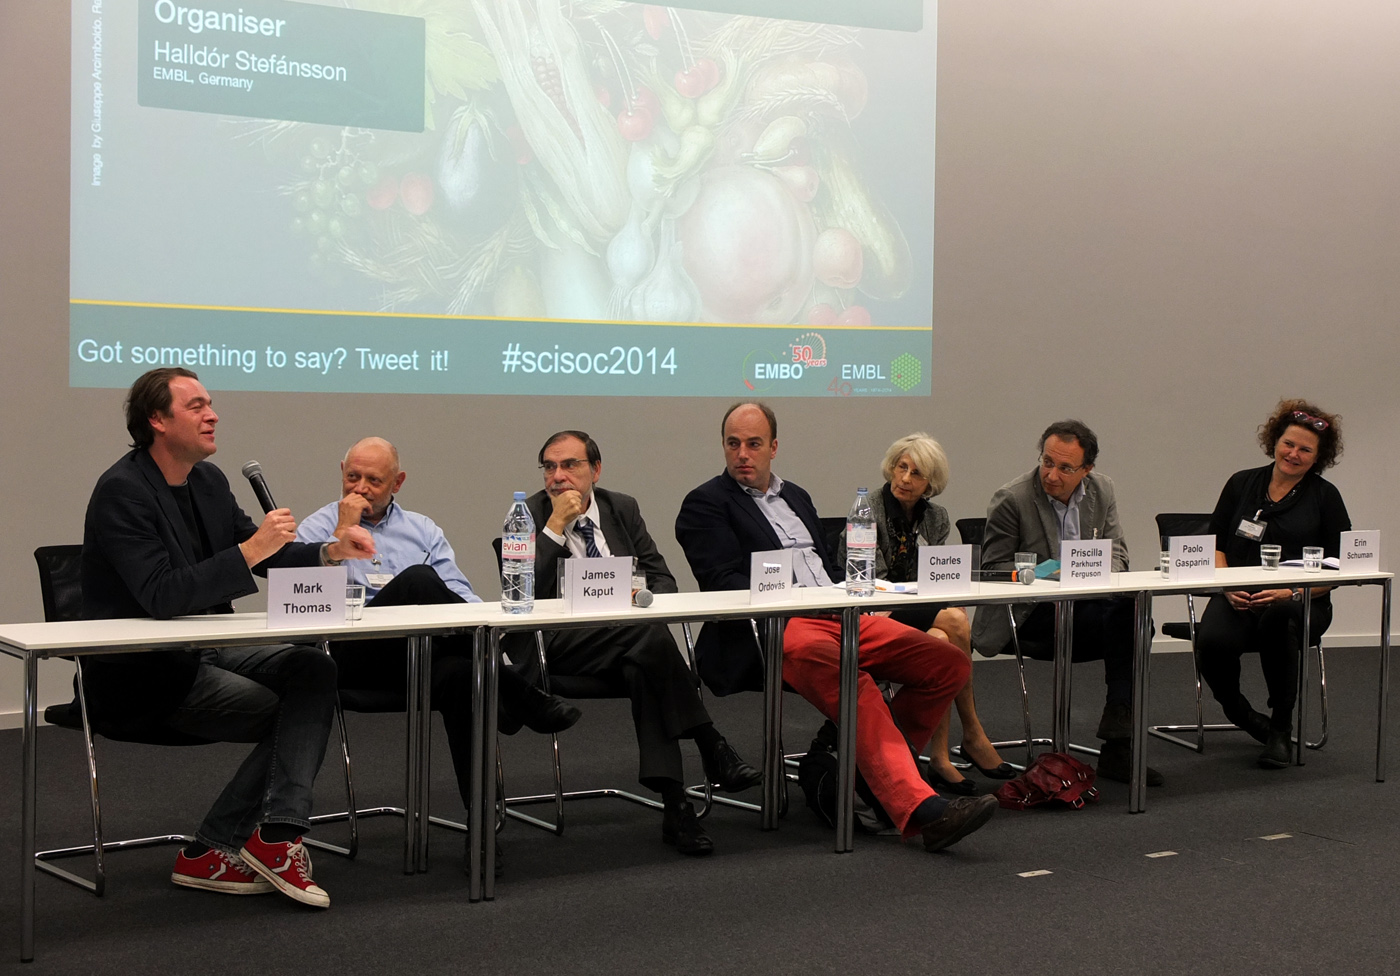 Panel discussion with the first day speakers at the Science and Society Conference